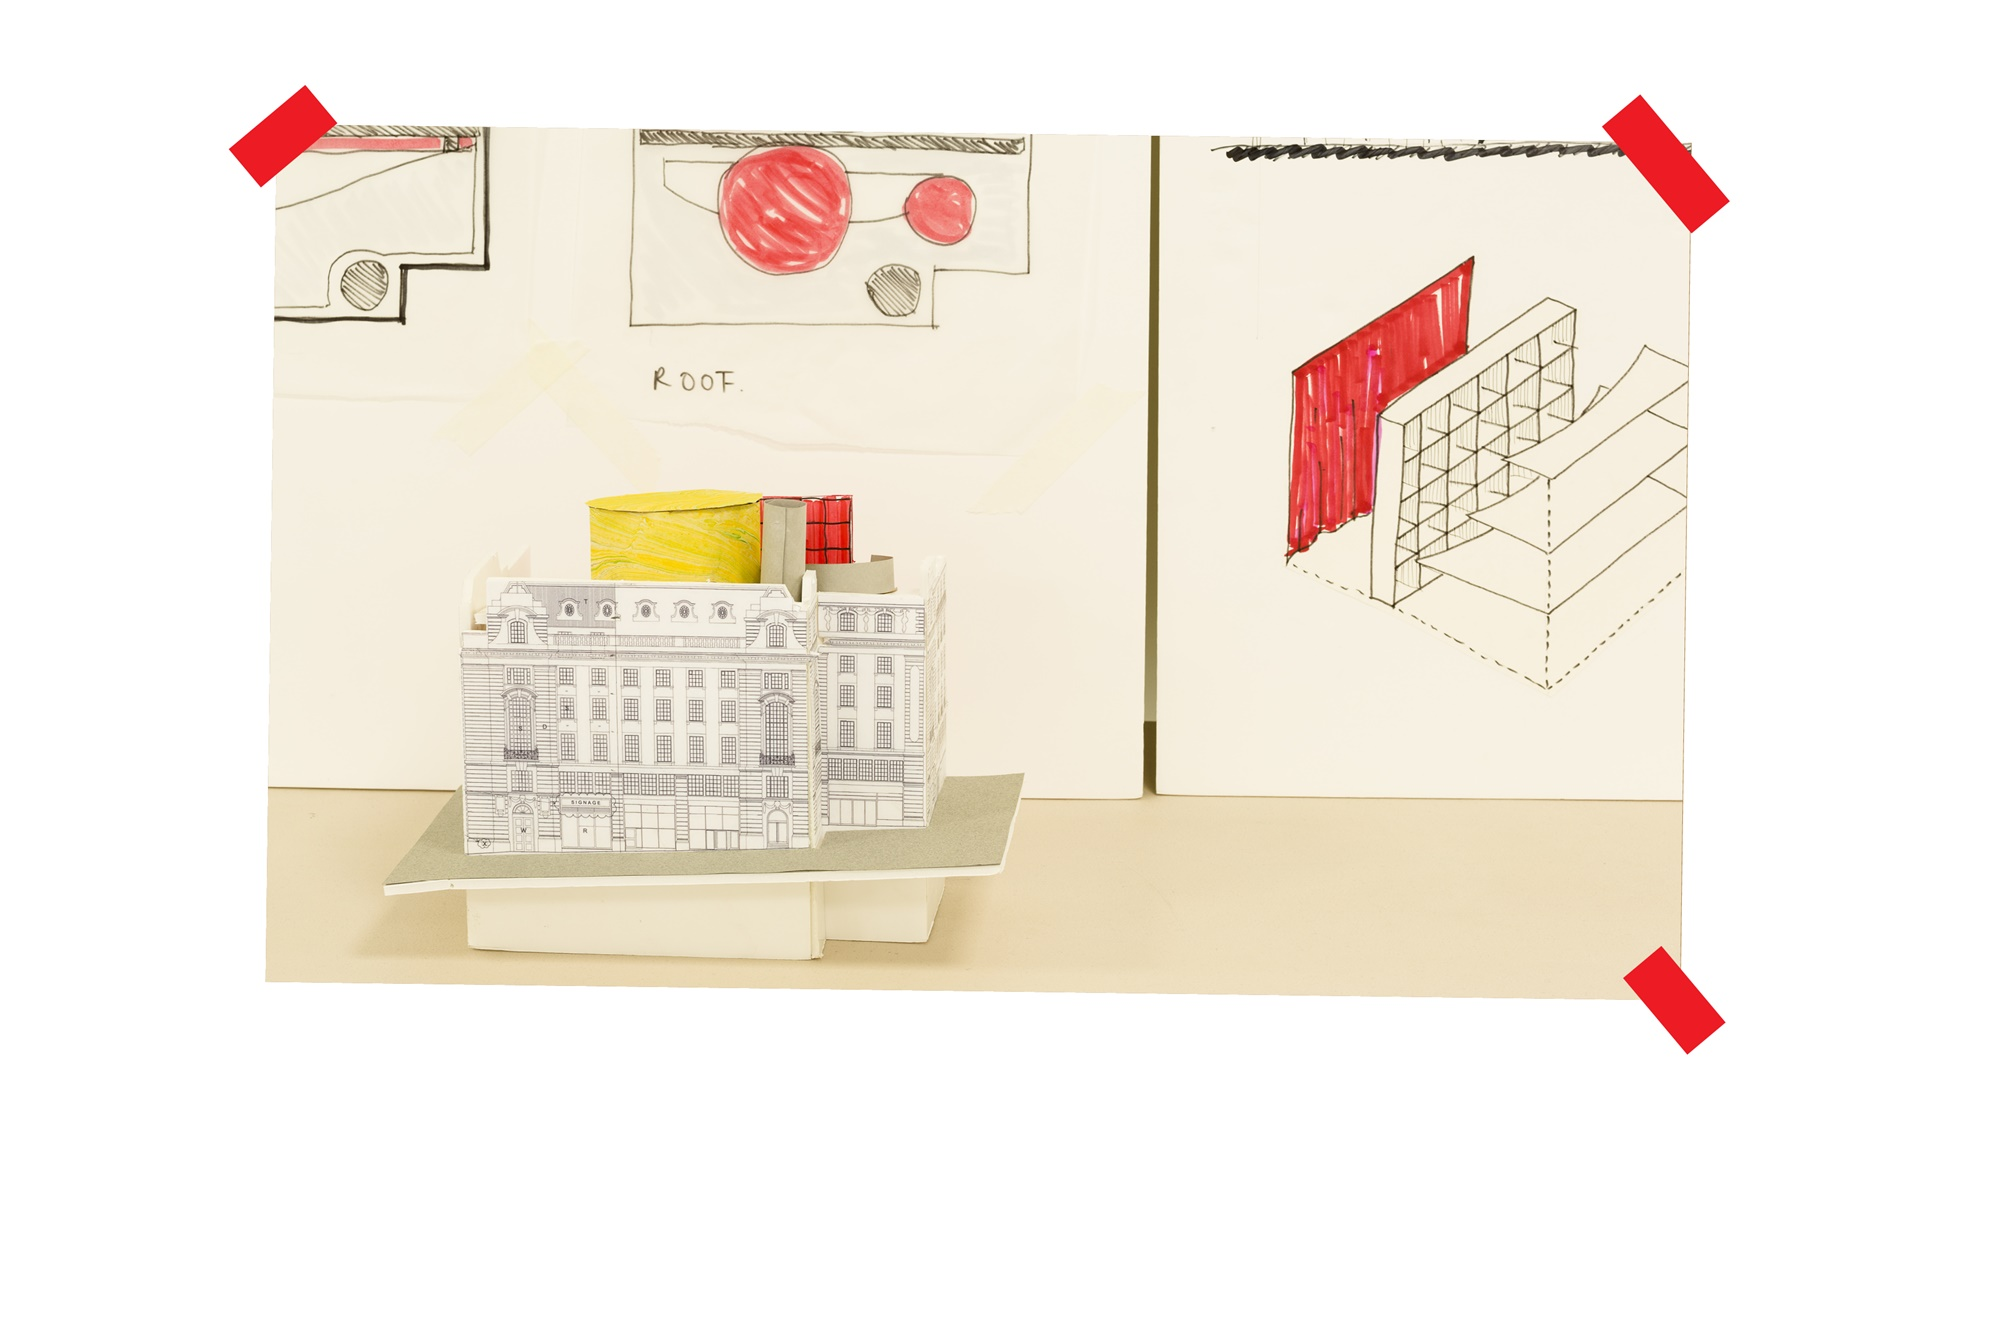 Future Office charrette: Will we keep choosing the office as a workplace? - 이미지